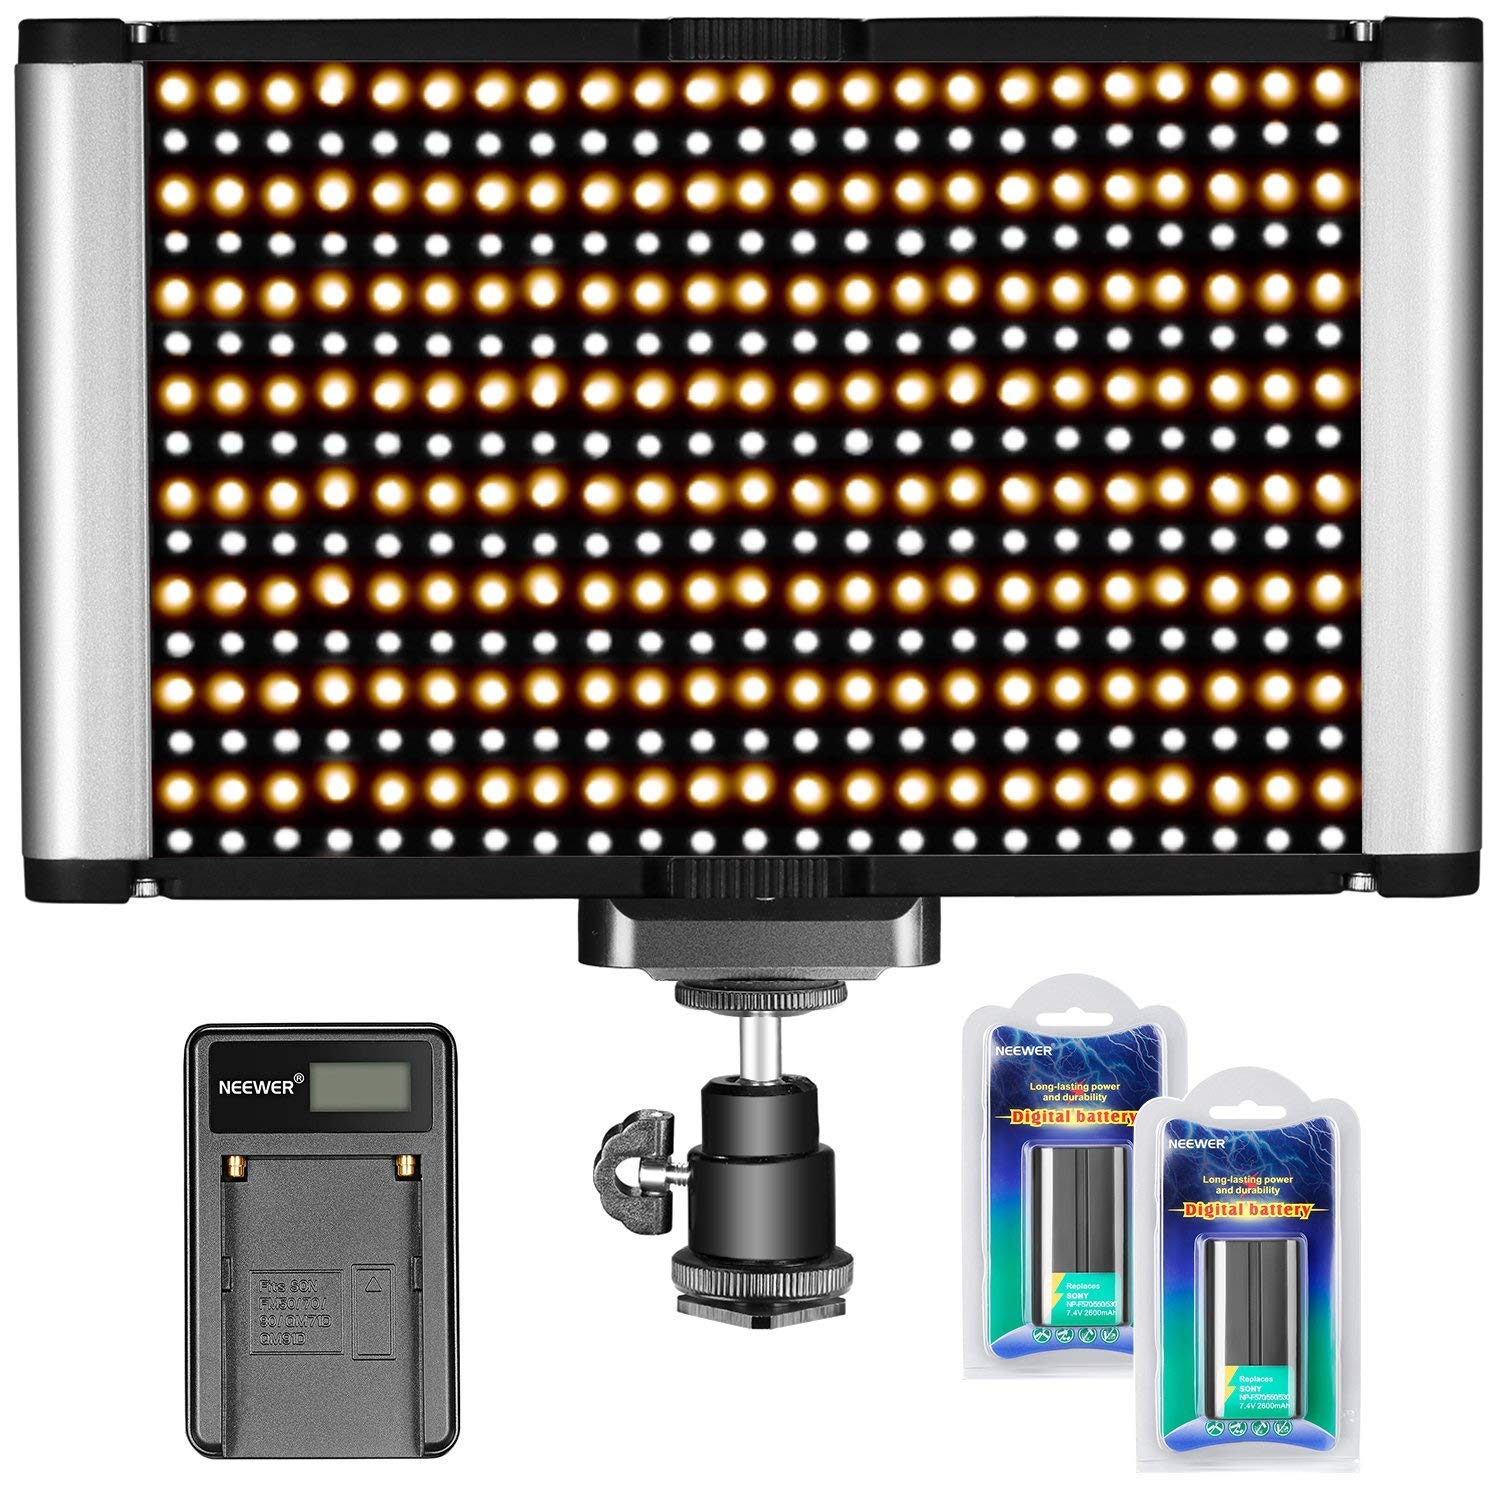 Neewer Dimmable Camera Video Light Kit: Bi-color 280 LED Panel CRI 96+ 3200-5600K,2 Pieces Rechargeable Li-ion Battery and USB Charger for DSLR Camera Photo Studio Photography,YouTube Video Shooting